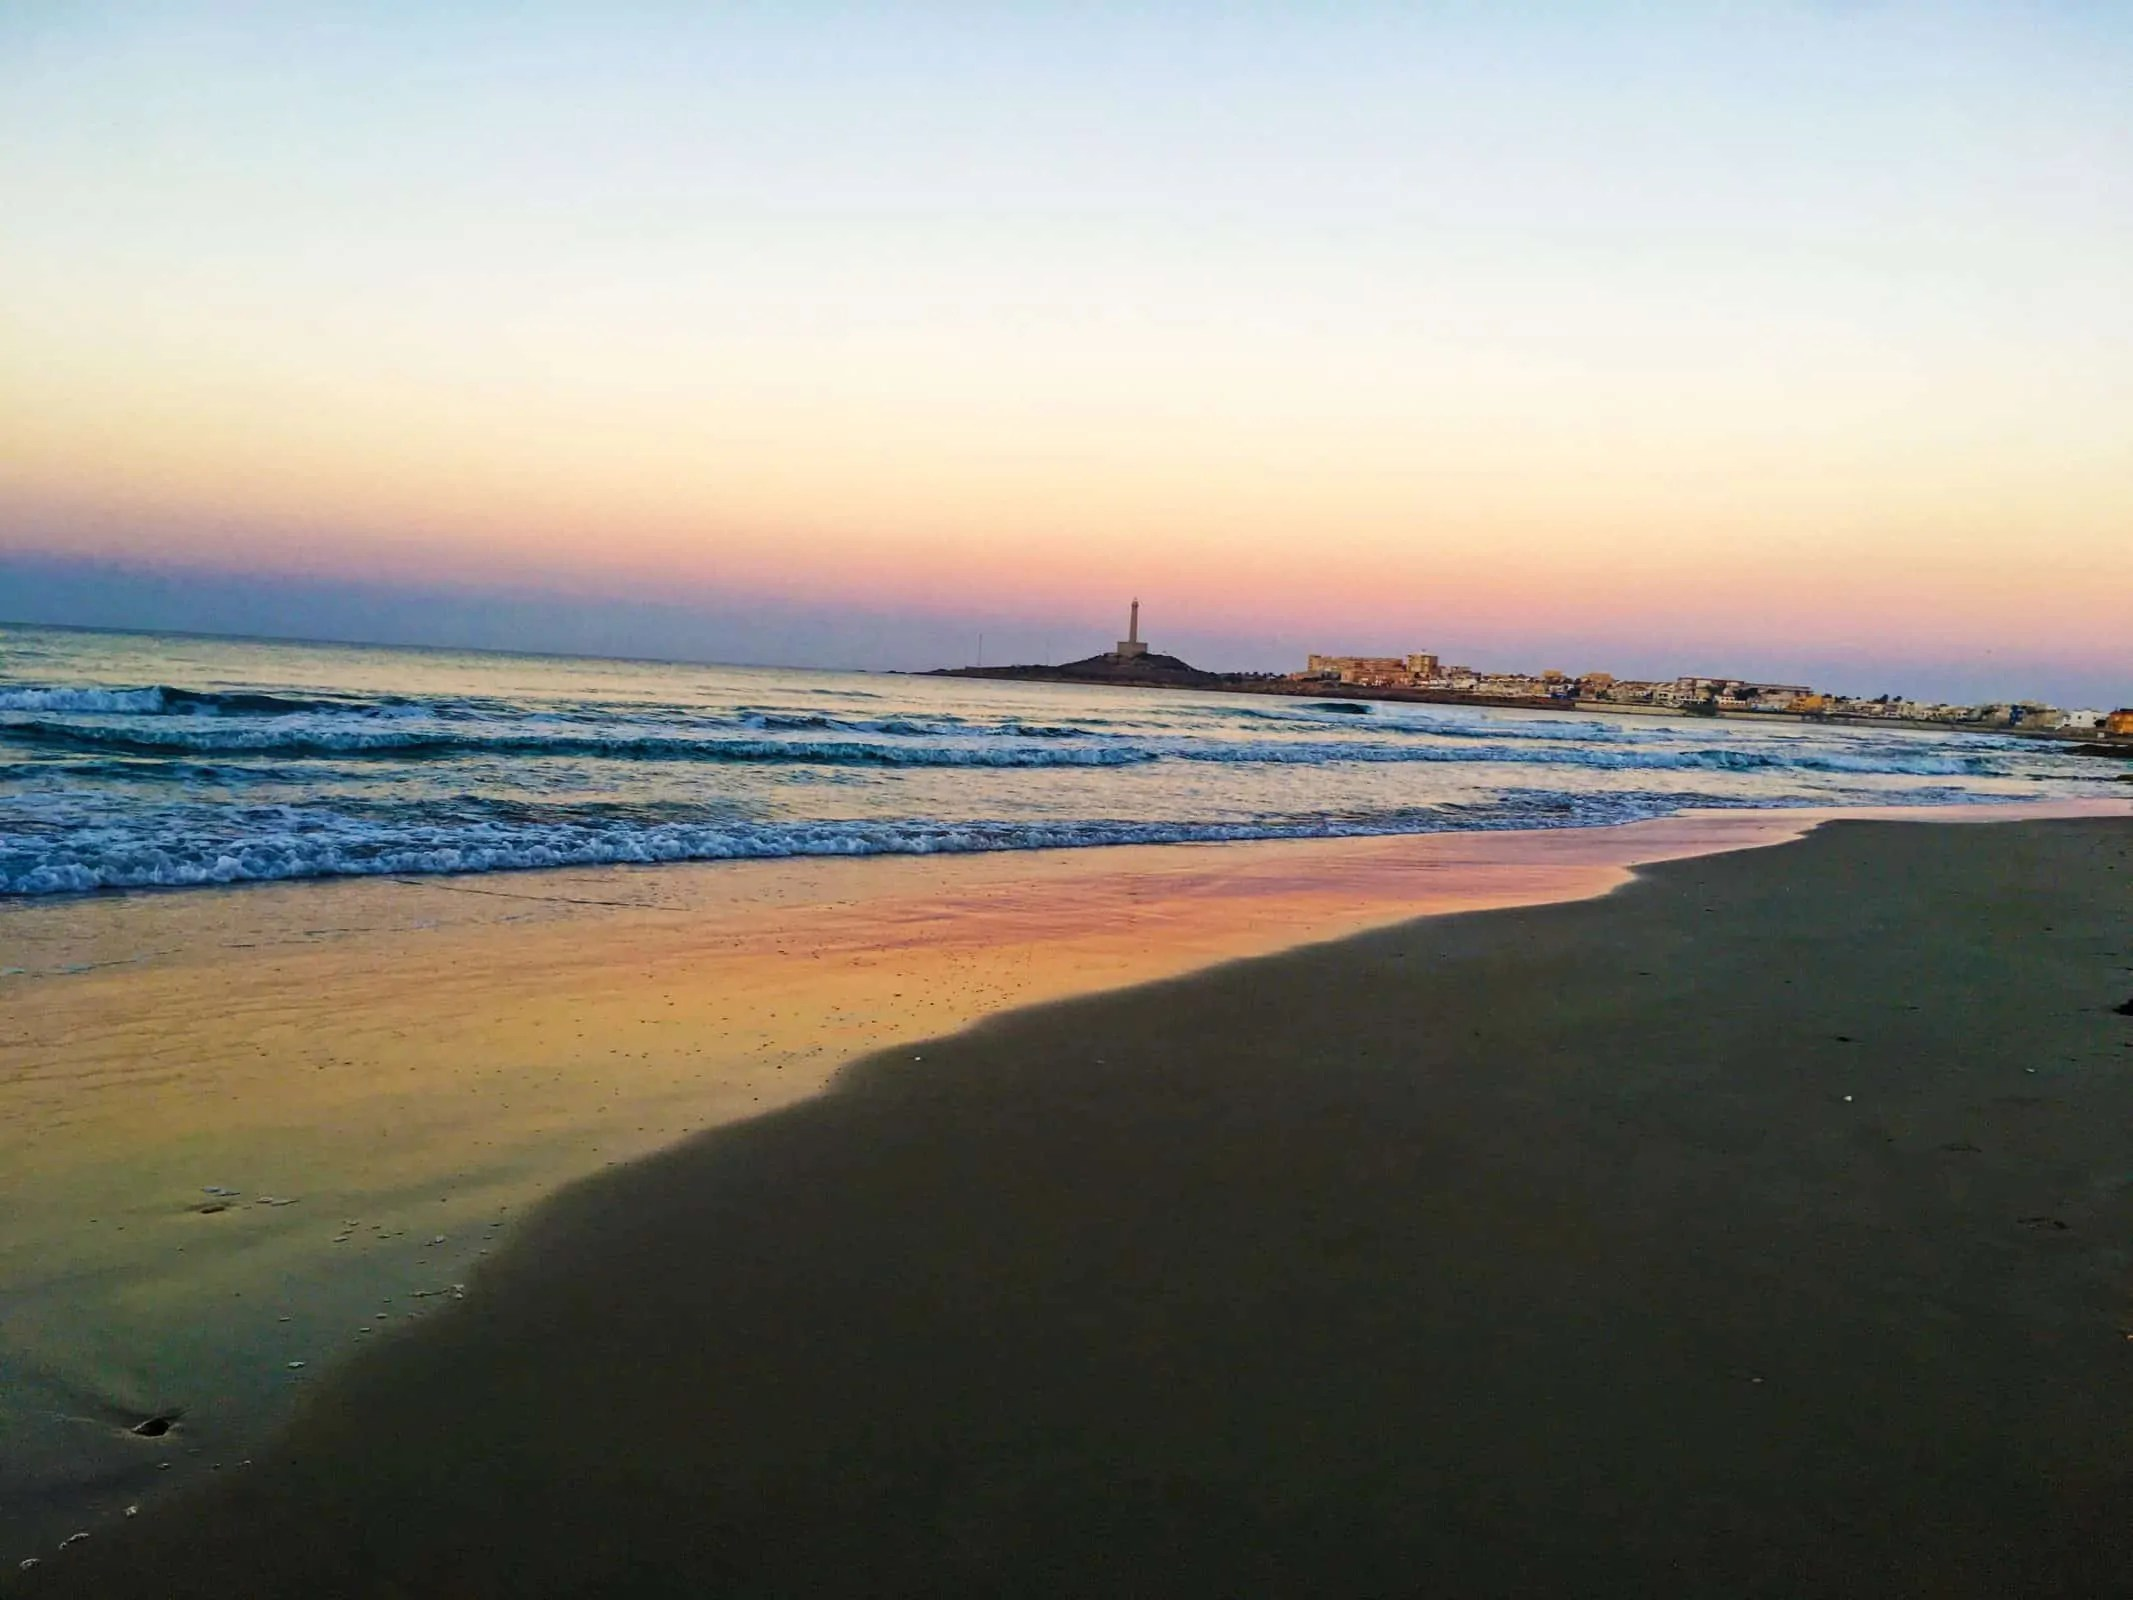 Cabo de Palos beach with the lighthouse in the background